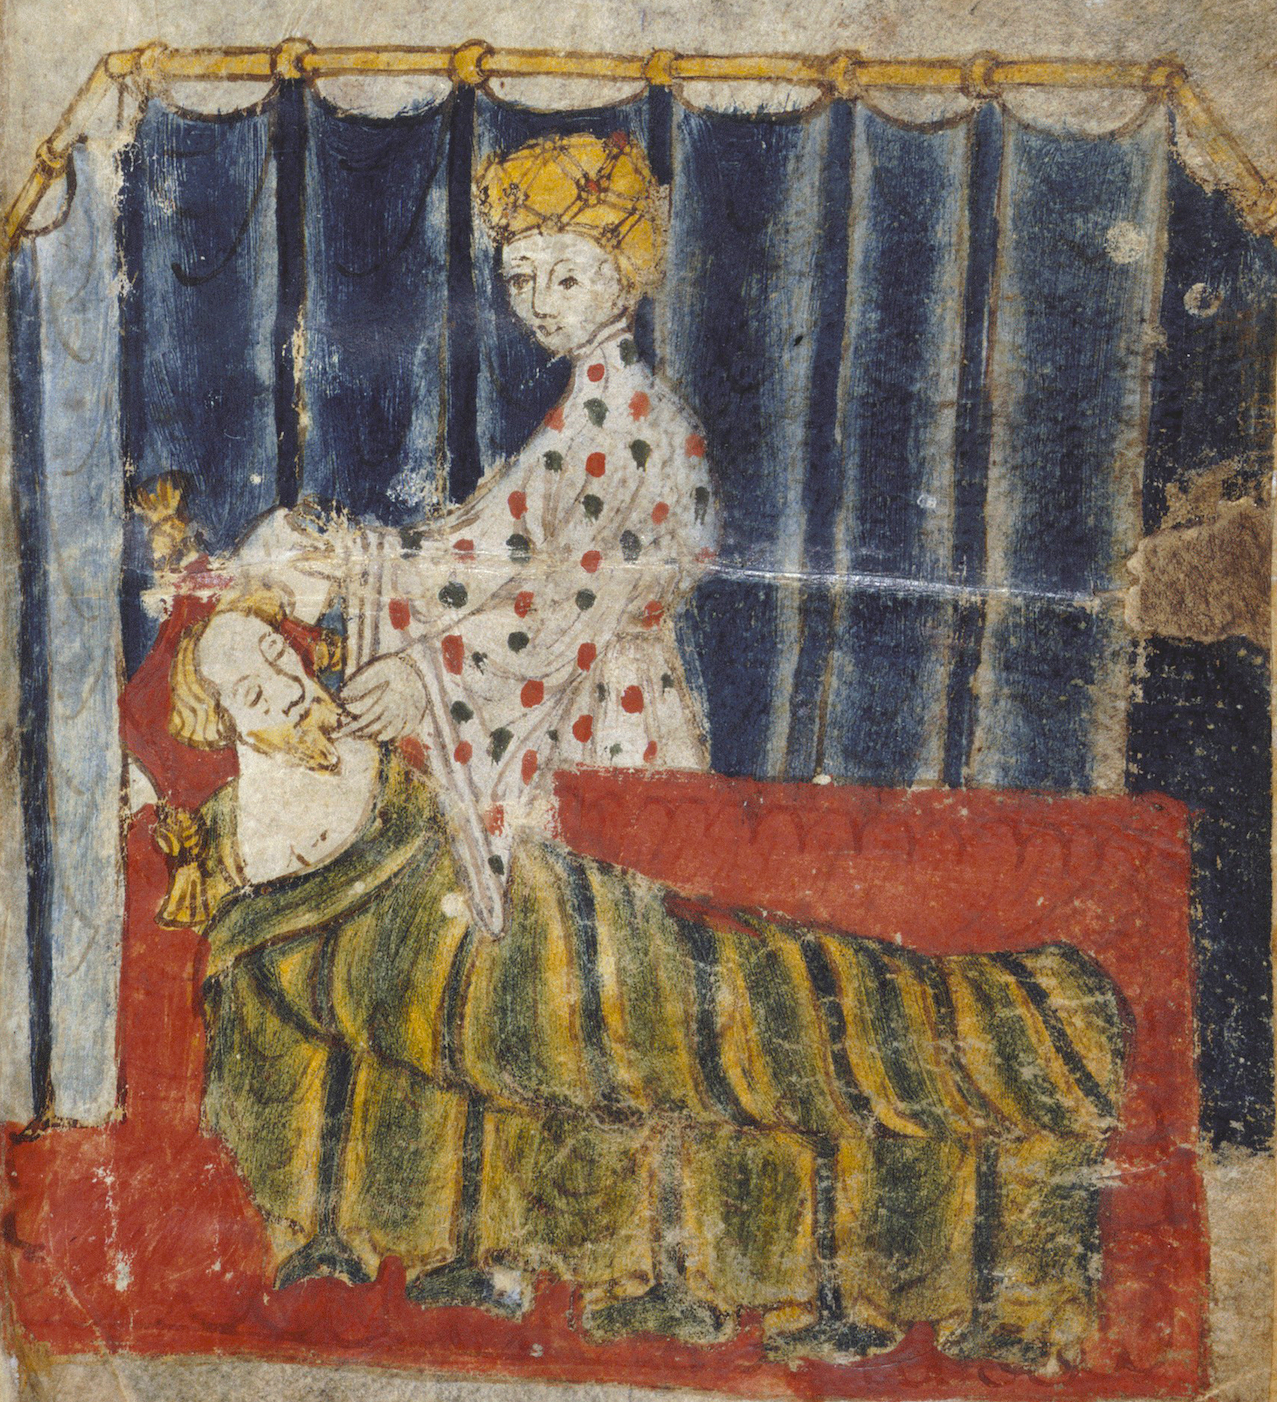 """an analysis of the poem sit gawain and the green knight As a medieval poem, sir gawain and the green knight transports audiences back to a """"sir gawain and popular lucid analysis of the descriptive poetics."""